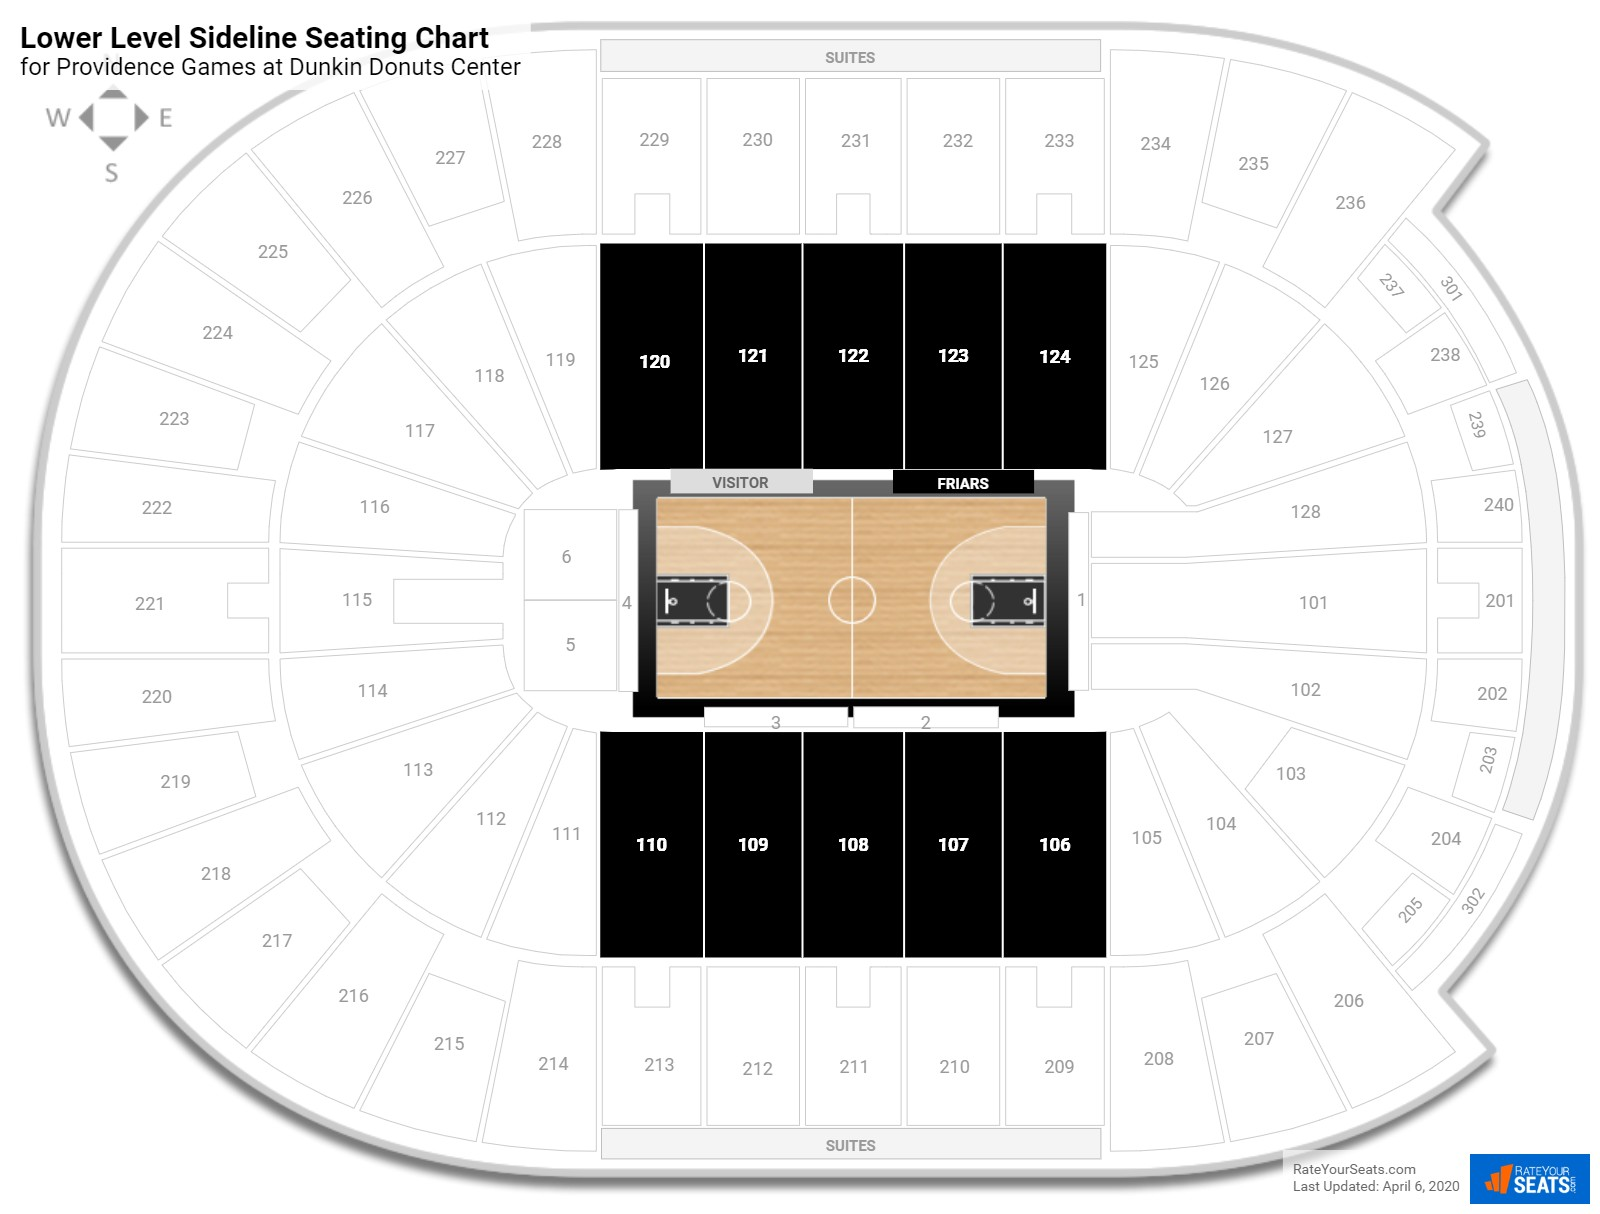 Dunkin Donuts Center Lower Level Center seating chart